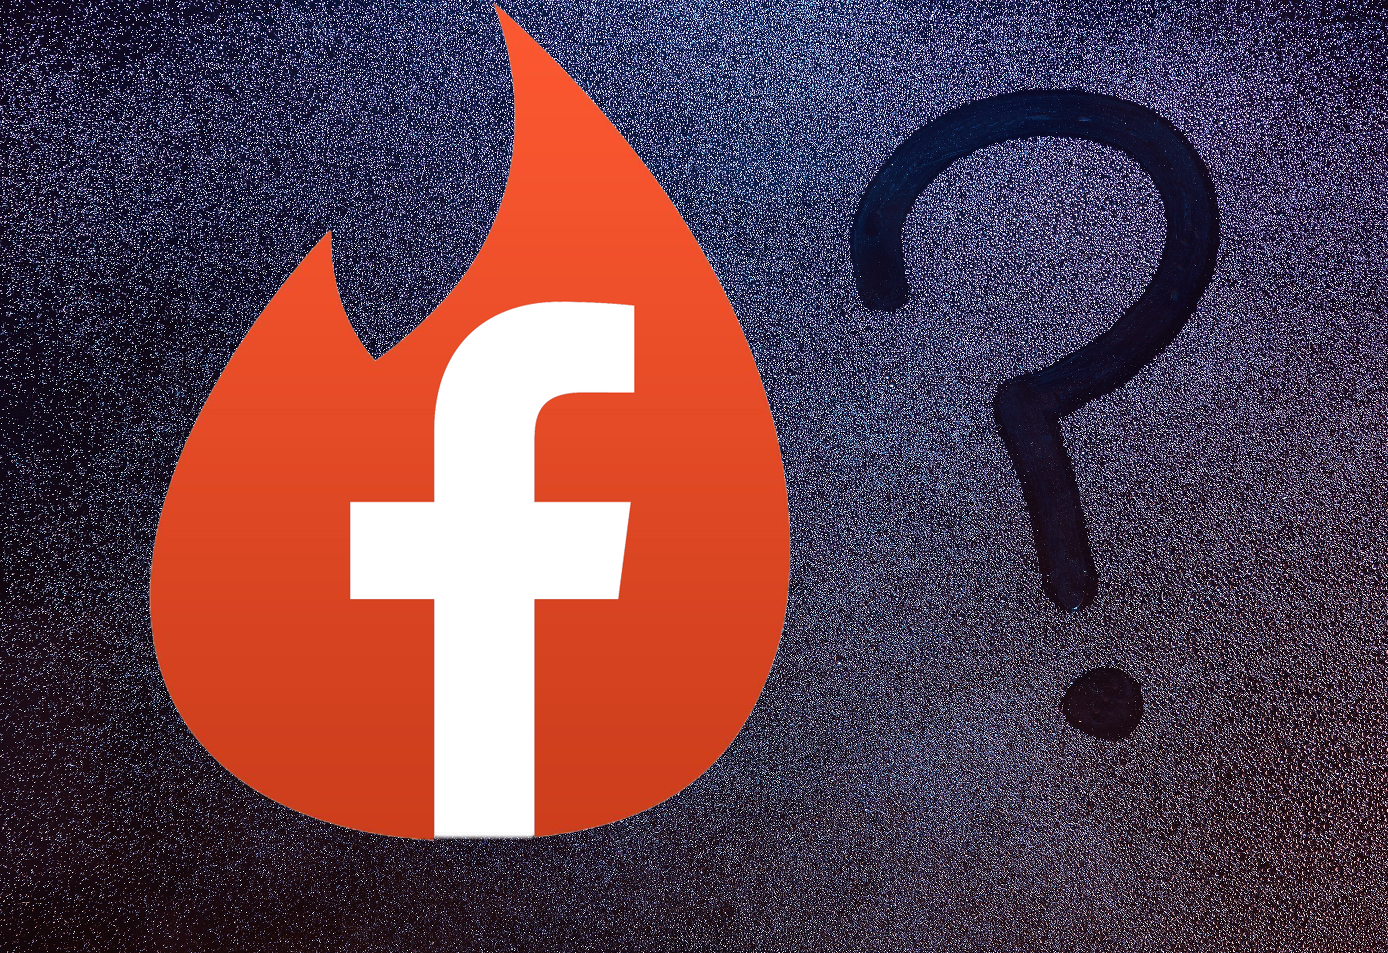 Facebook is the New Tinder?